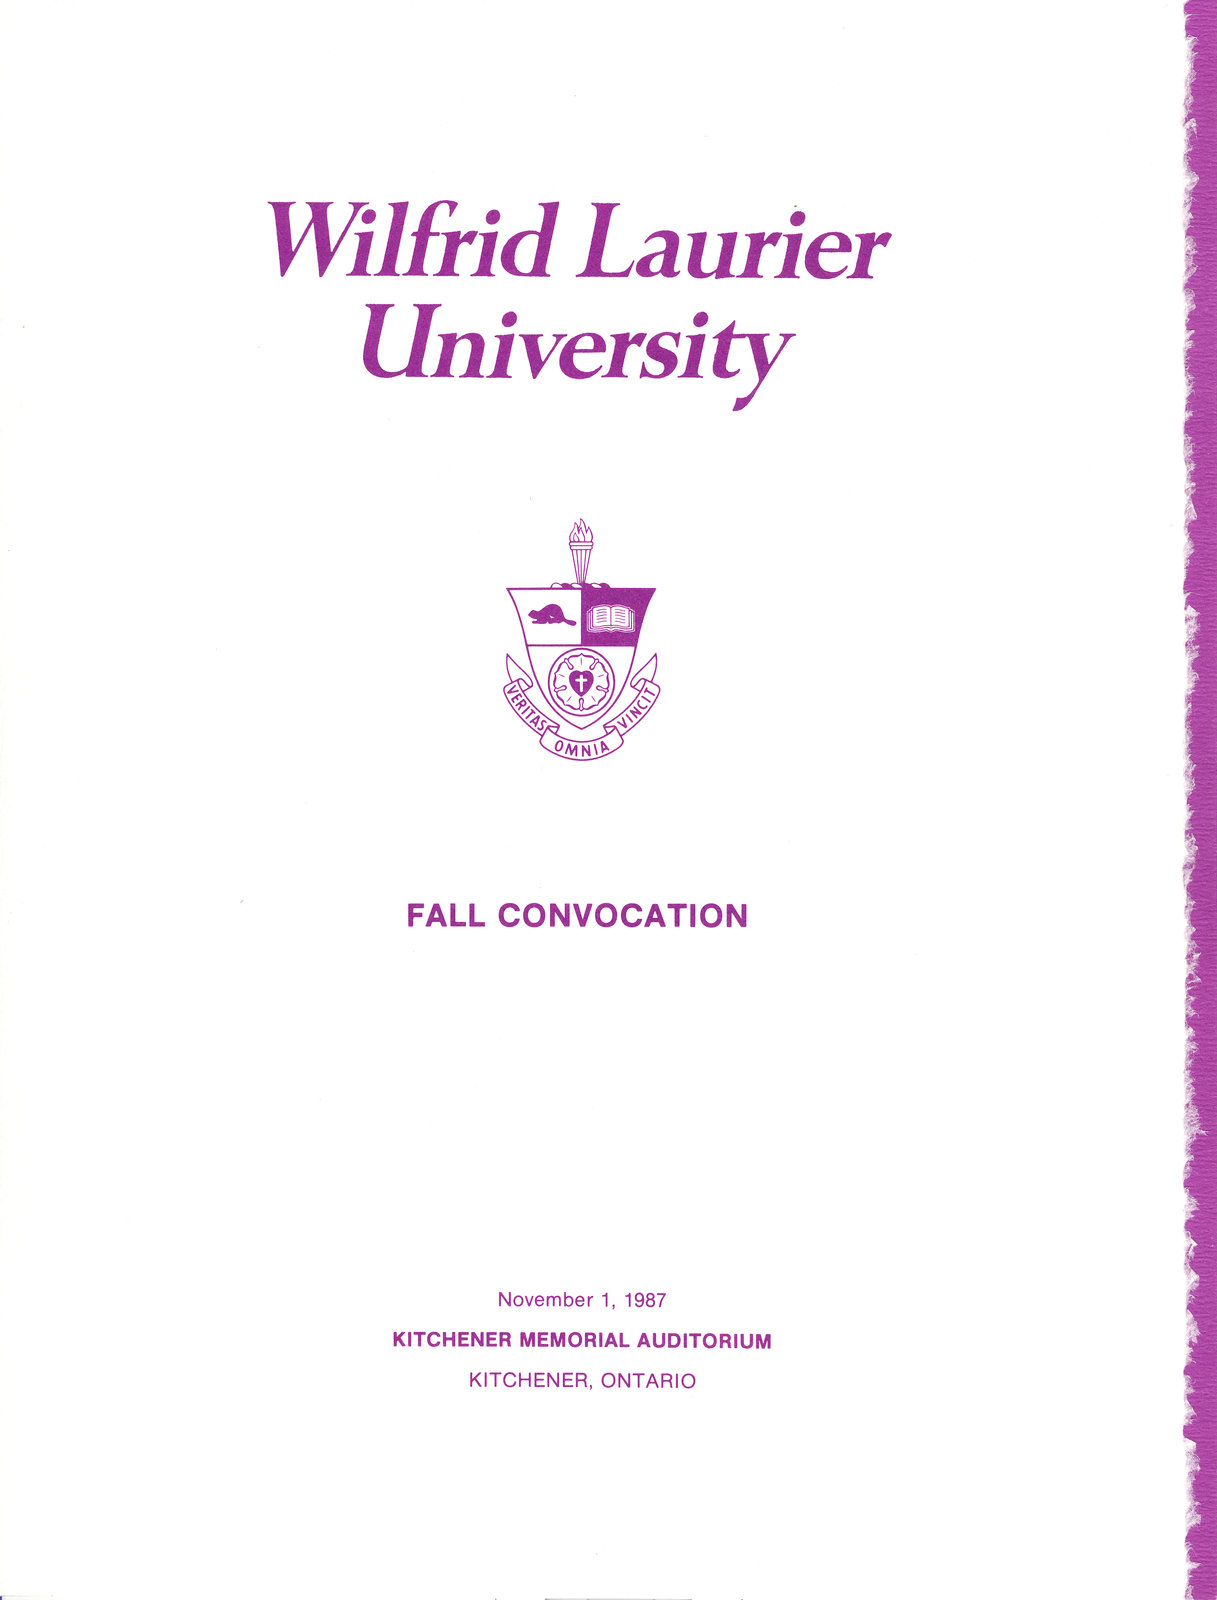 Wilfrid Laurier University fall convocation 1987 program